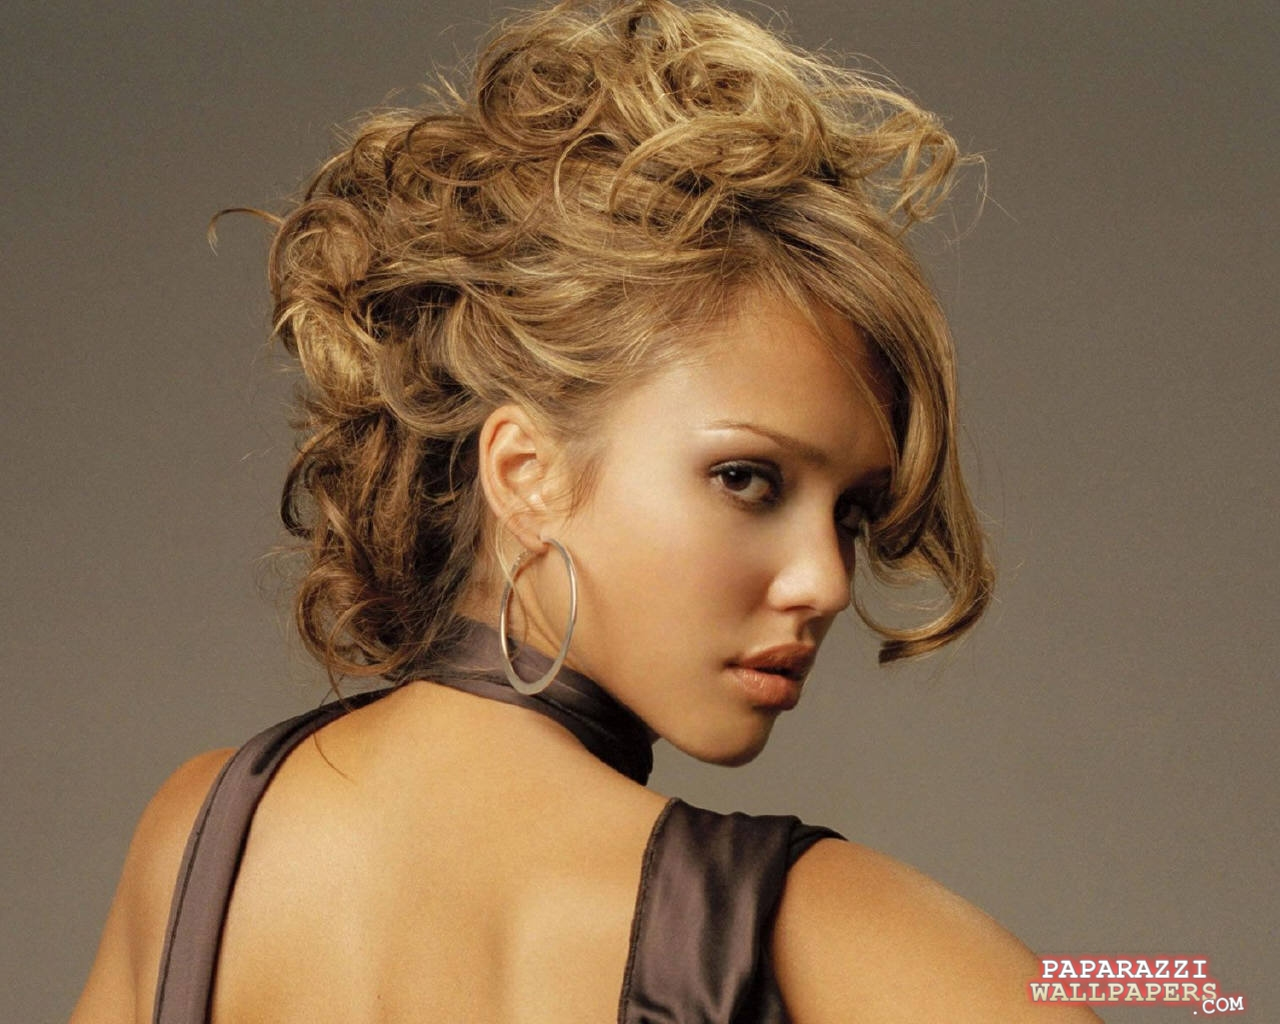 jessica alba wallpapers 082